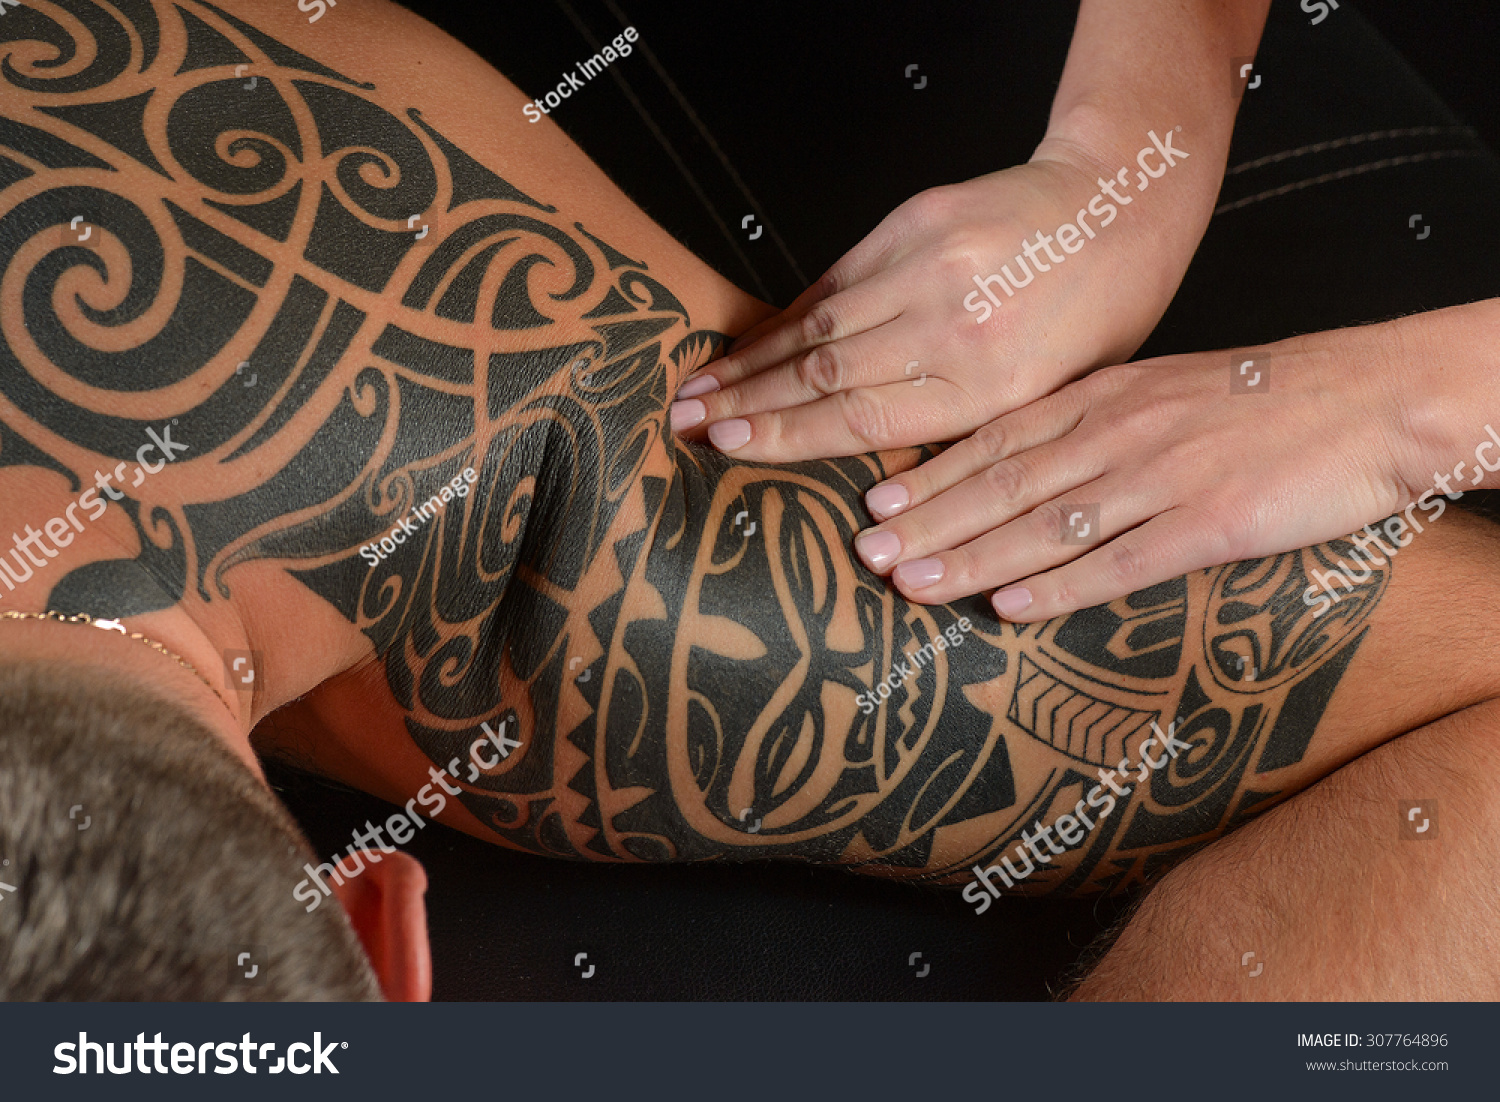 Nude tattoo images